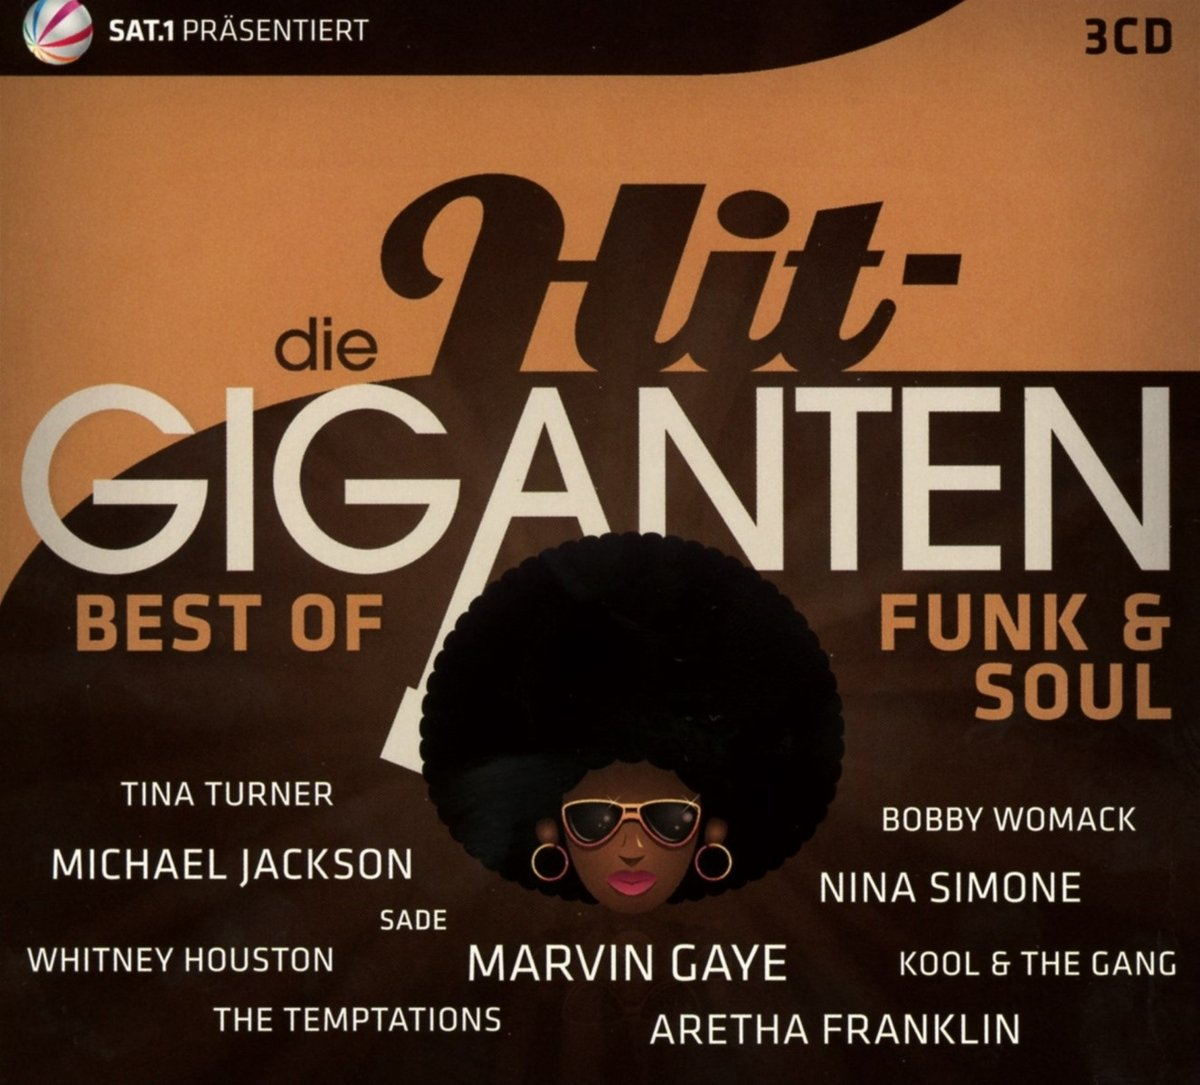 VA - Die Hit - Giganten Best Of Funk And Soul - 3CD - FLAC - 2017 - NBFLAC Download